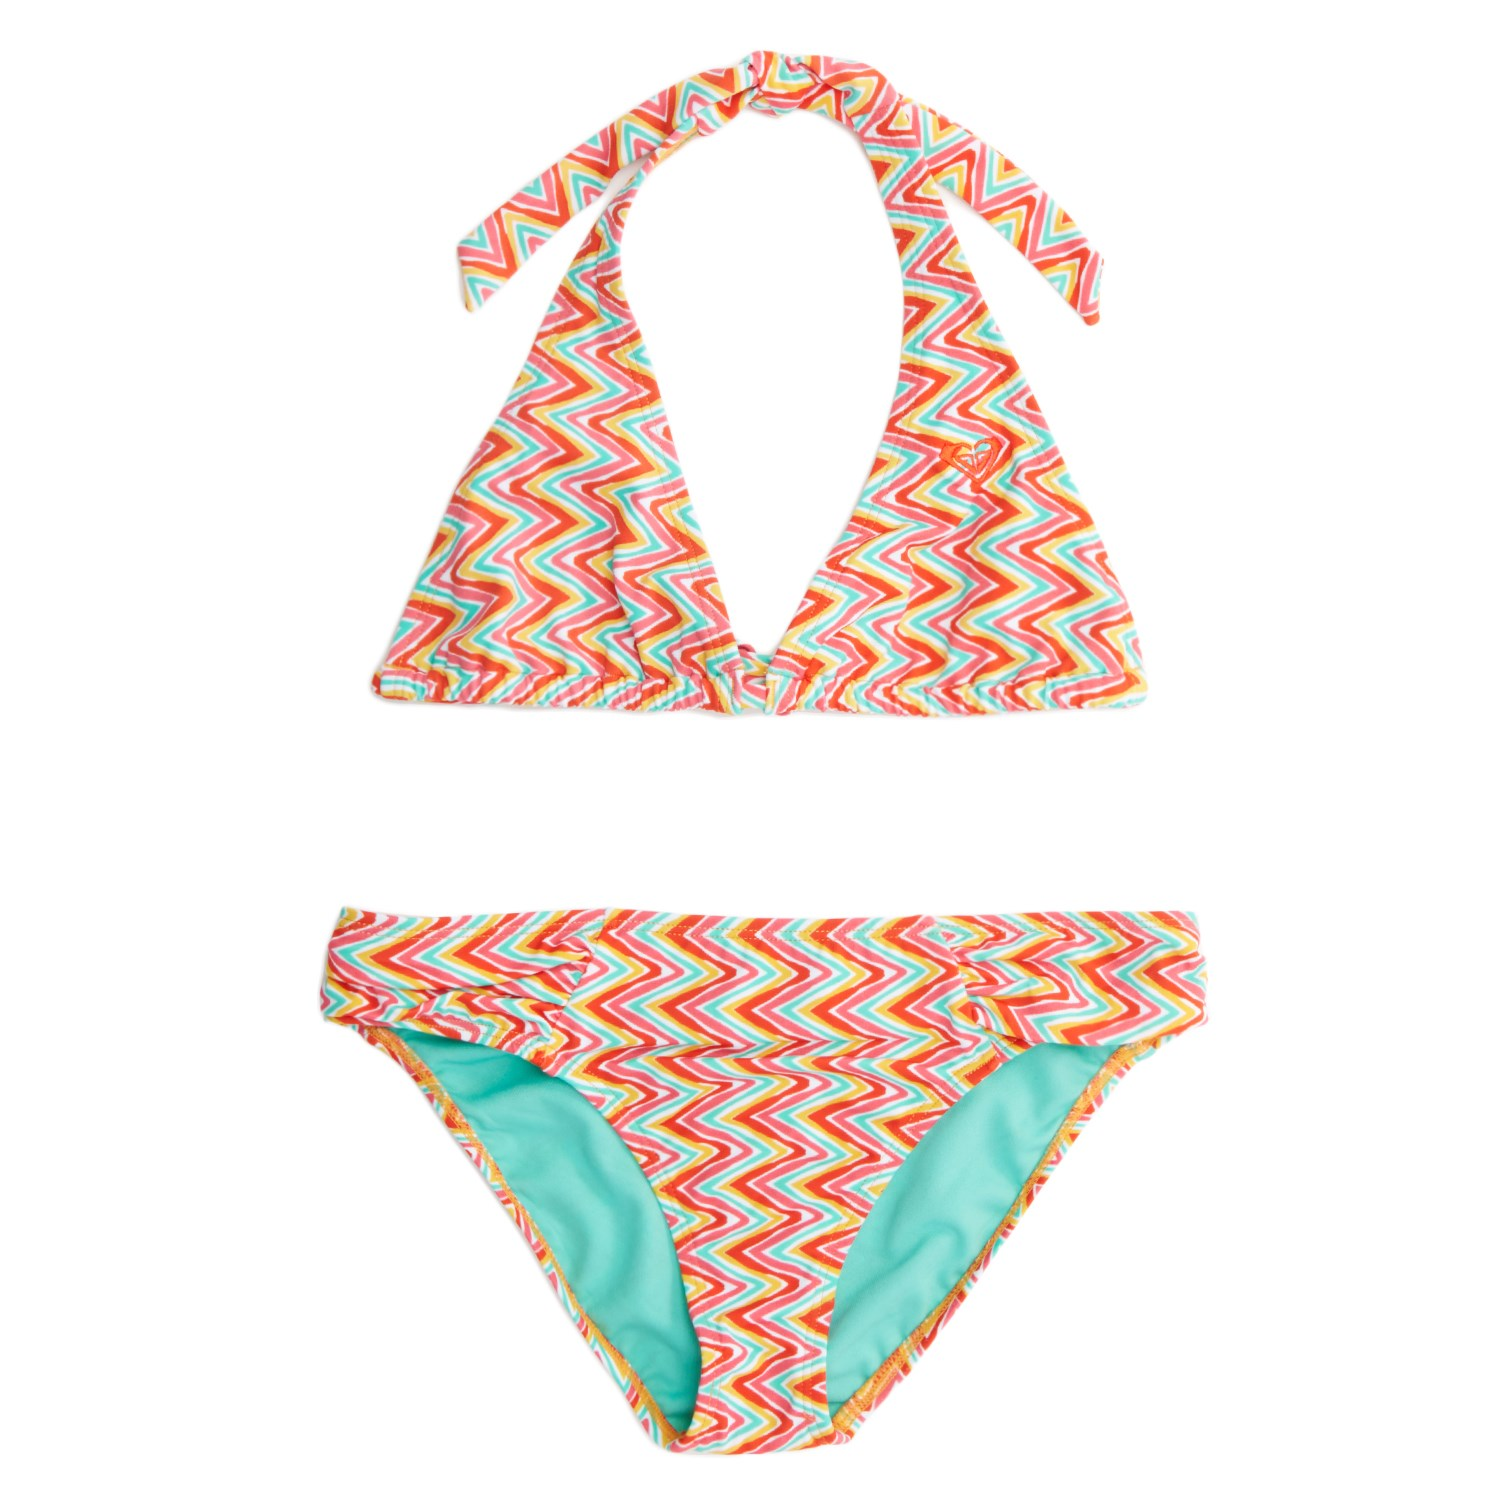 Roxy Catching Waves Halter Bikini Top And Bottom Set (Ages